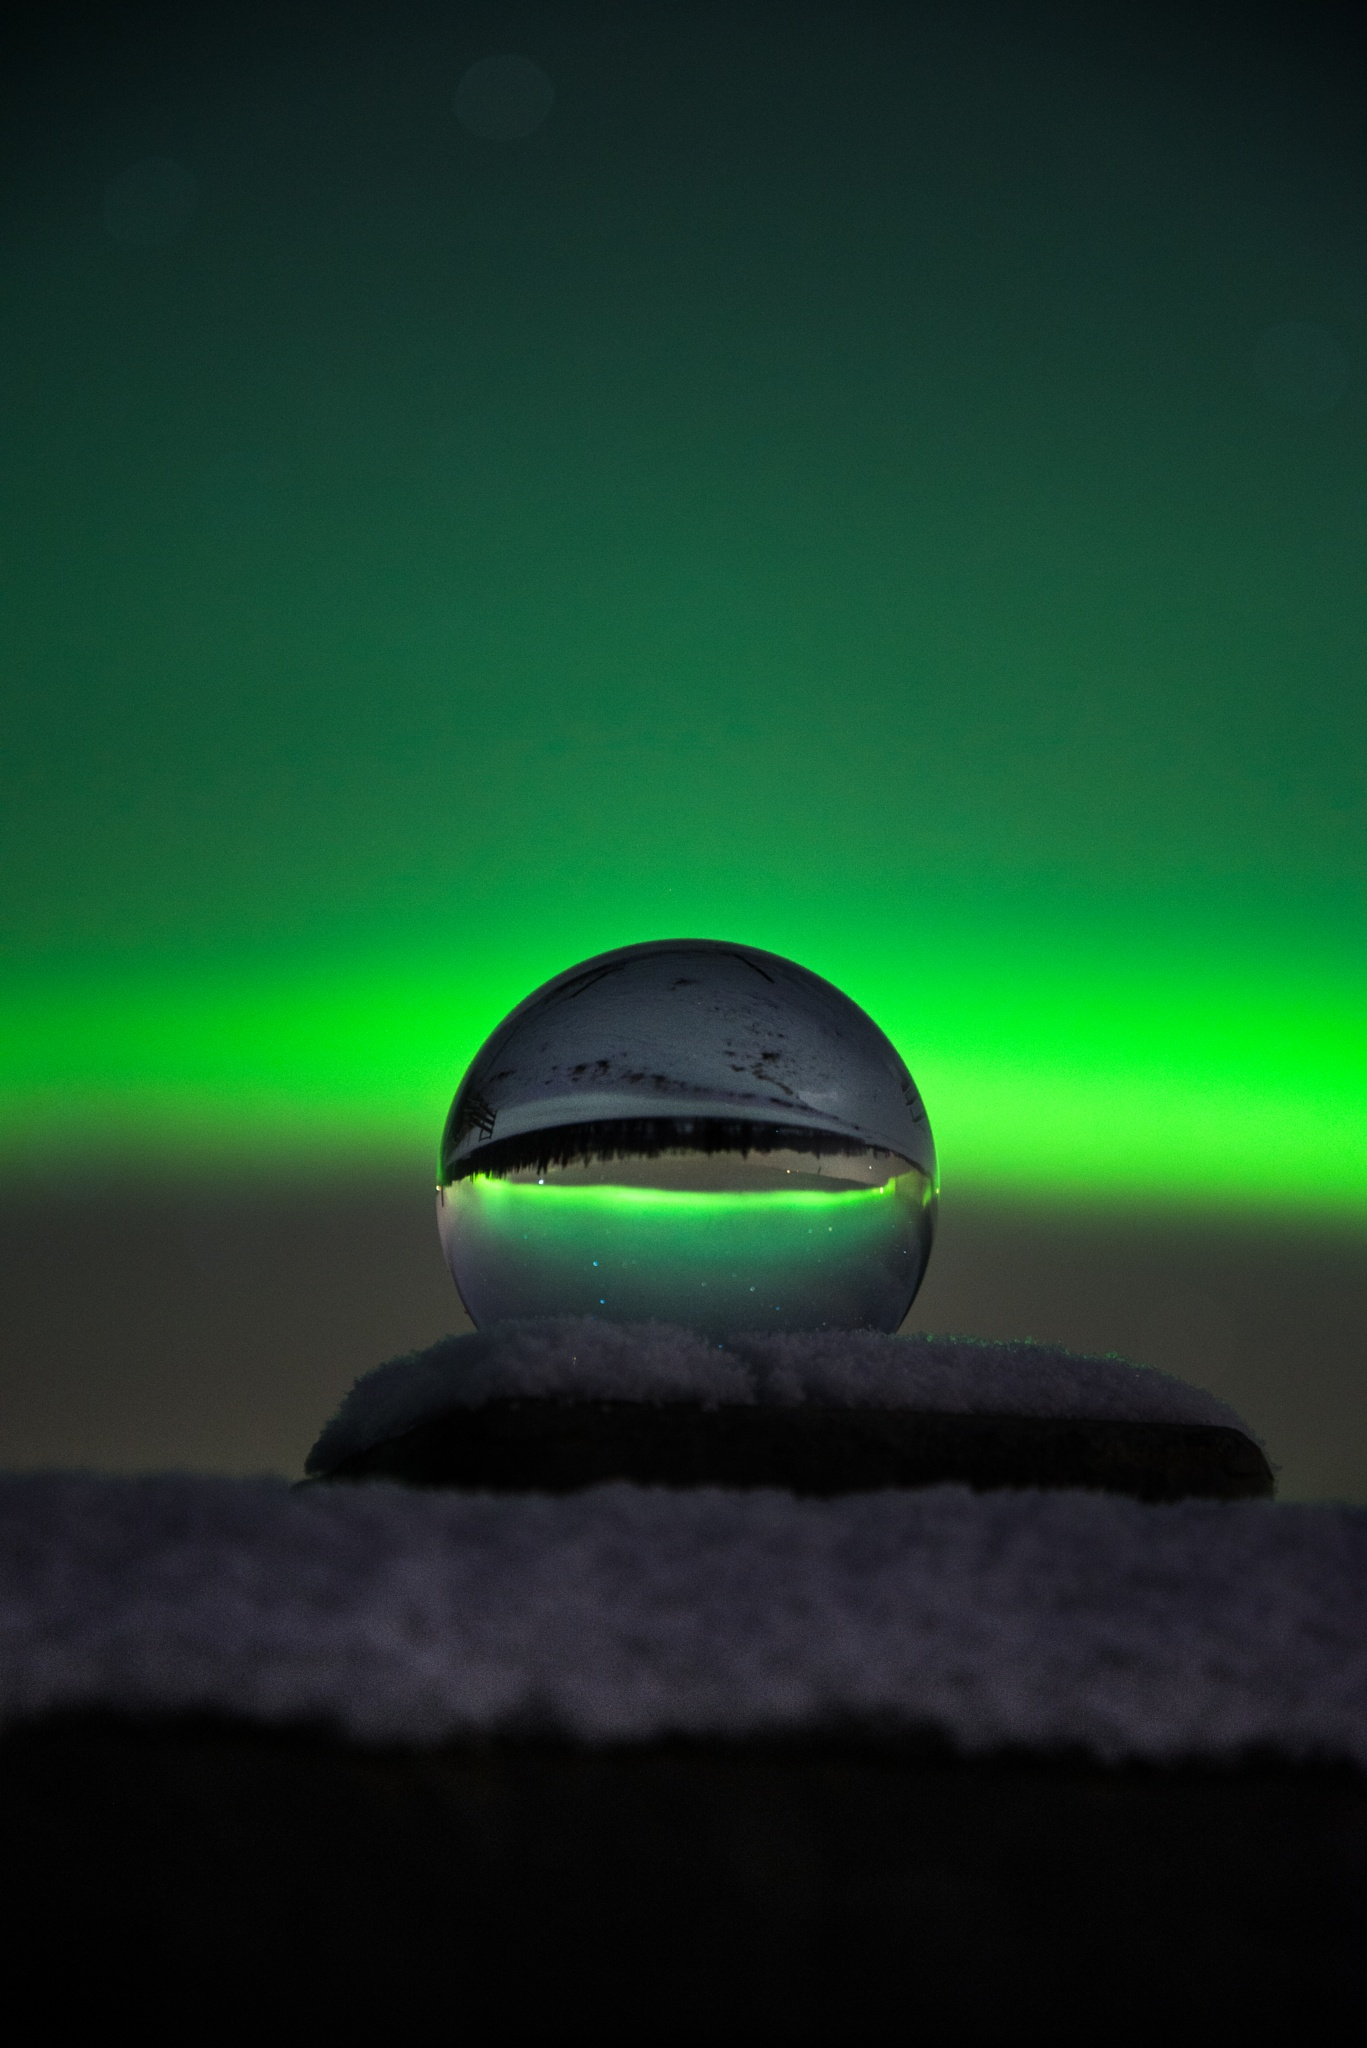 Orby Green Ball by jessemartineau